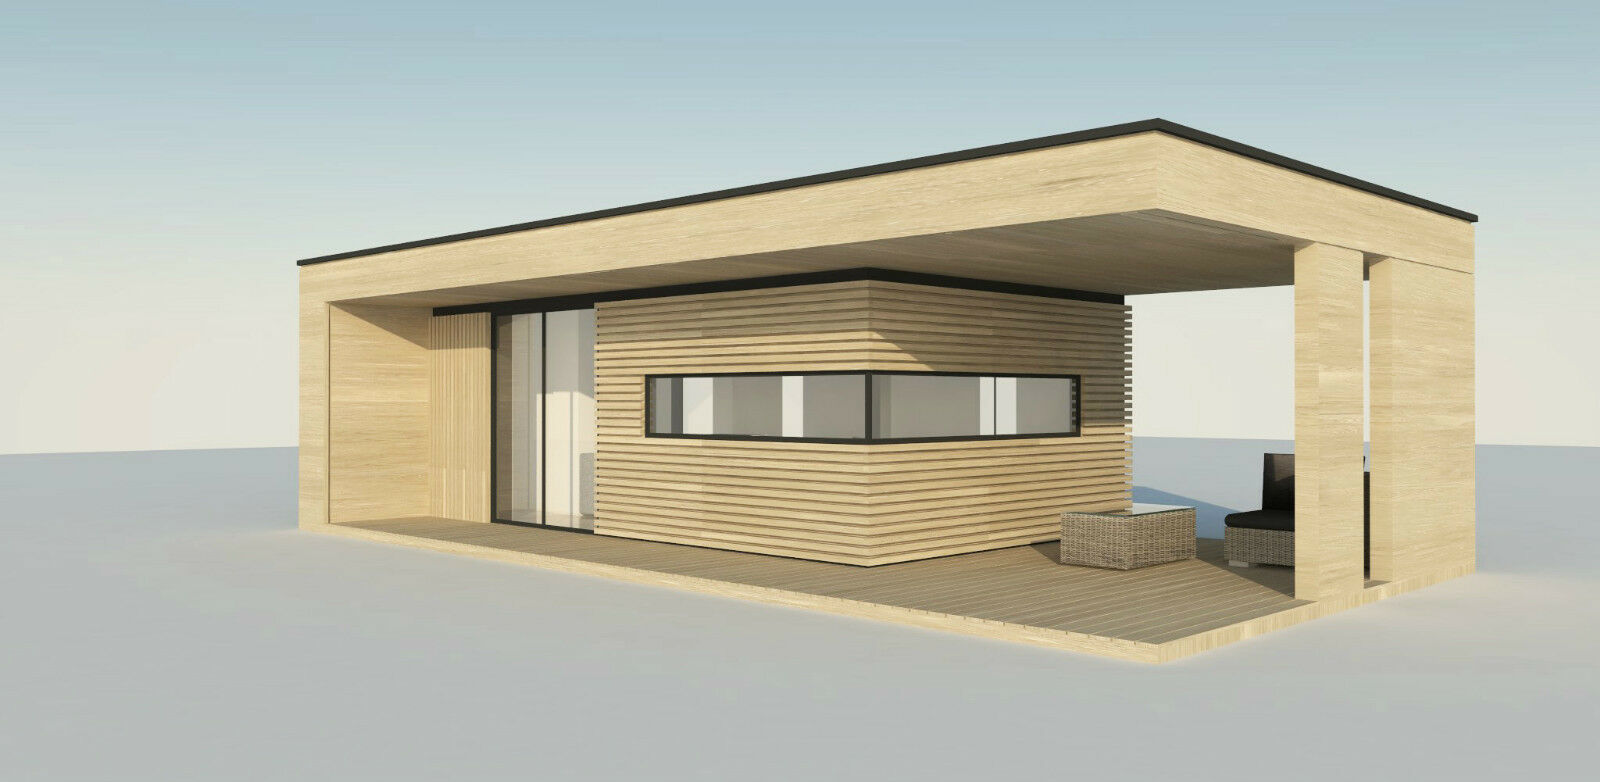 Prefab Homes Sip Panel House Modern 20 M2 20